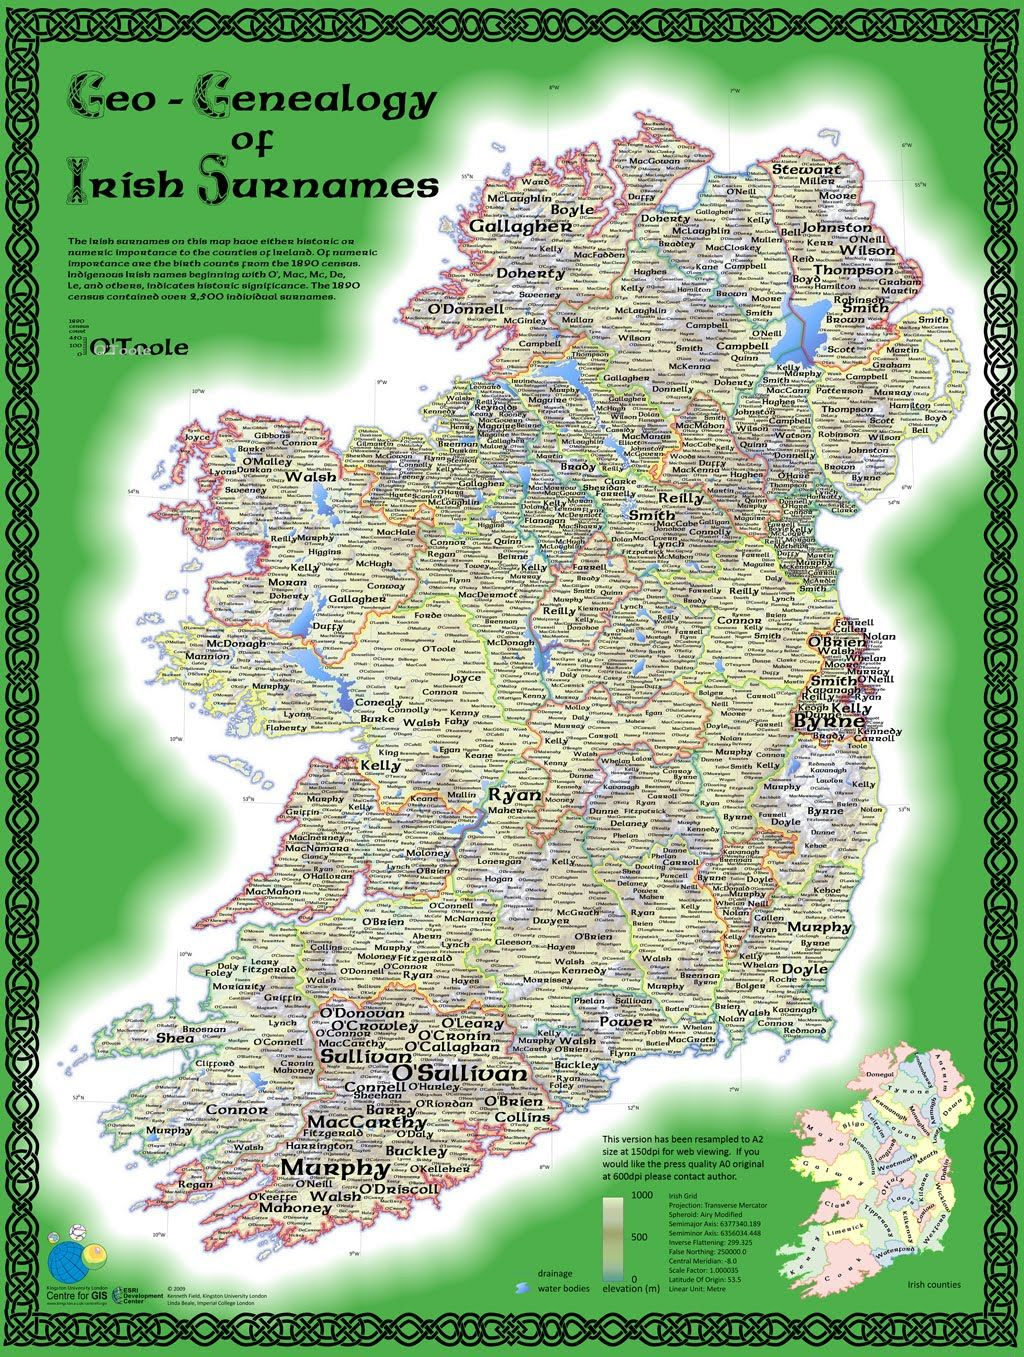 Ancestral Map of Ireland   YOUR ANCESTRAL FAMILY BLOG       Surname     Ancestral Map of Ireland   YOUR ANCESTRAL FAMILY BLOG       Surname Map of  Ireland